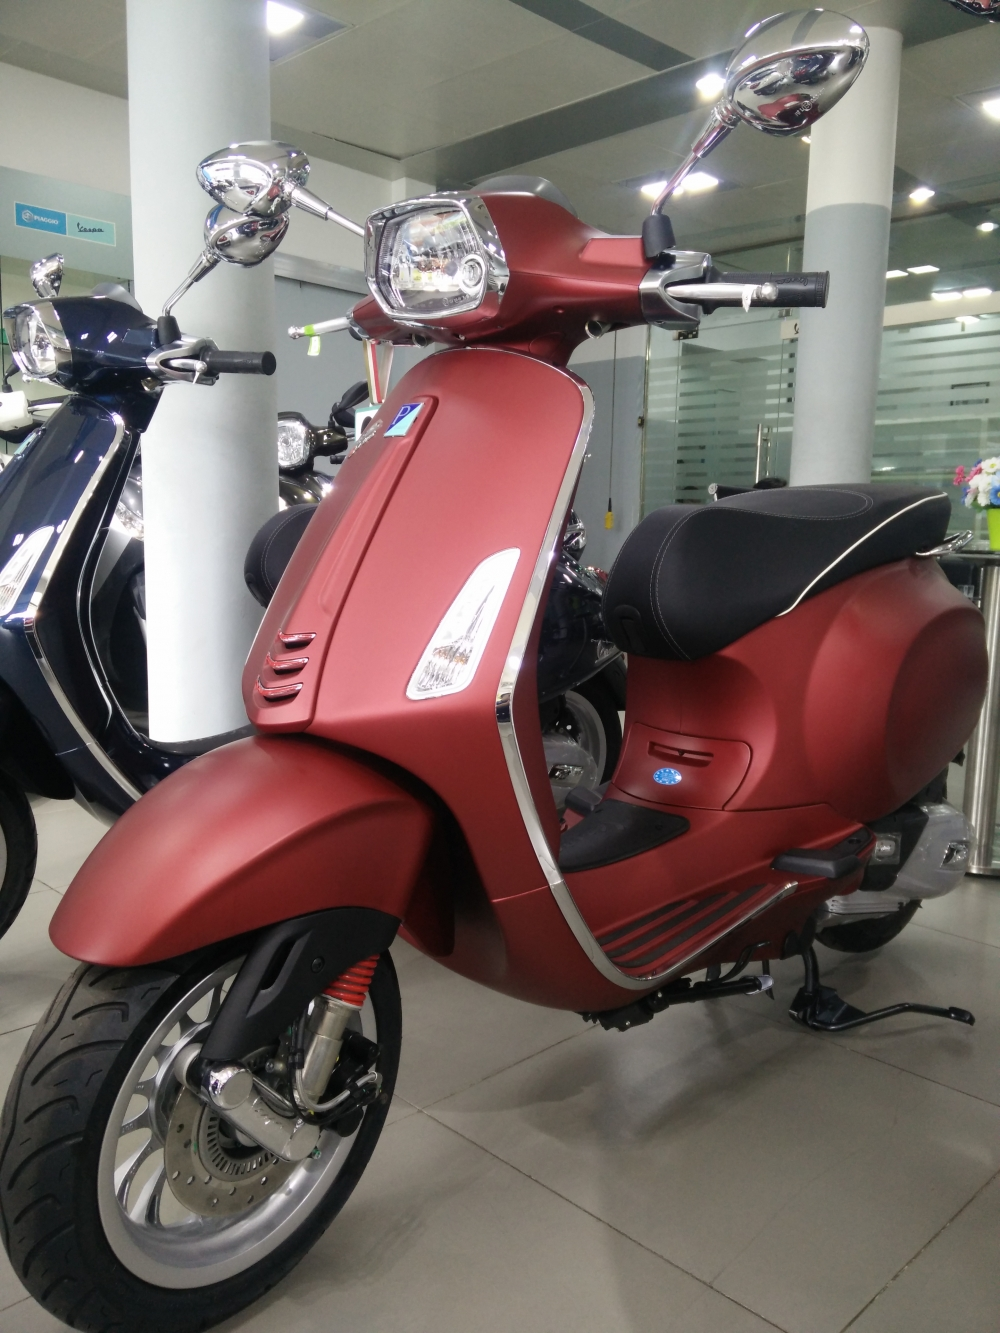 VESPA Sprint ABS chinh hang gia re nhat SG - 11